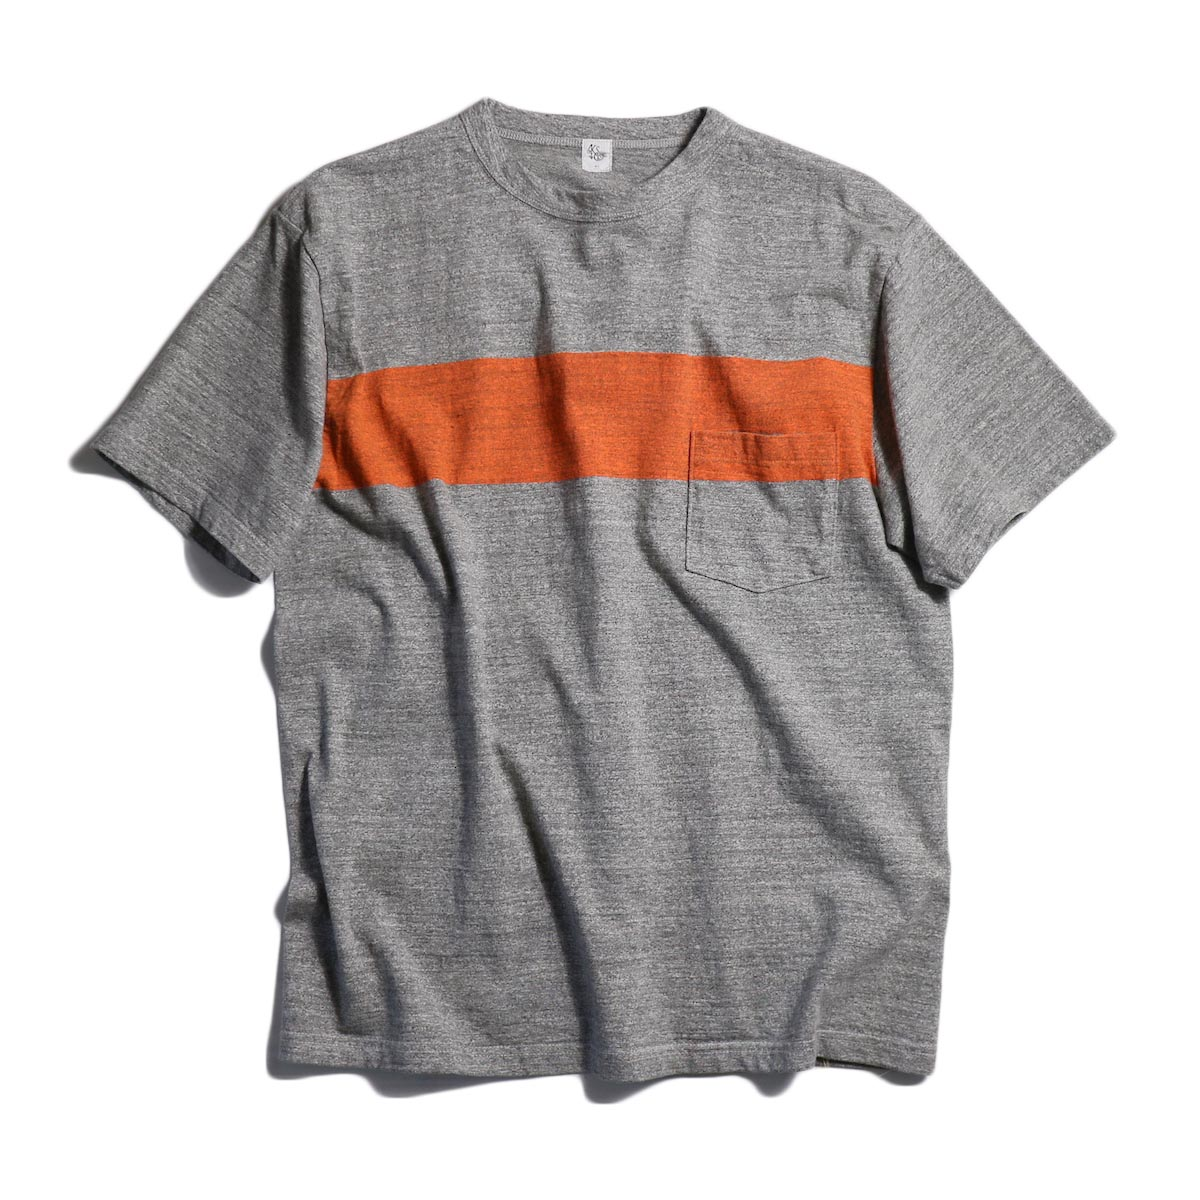 Kaptain Sunshine / West Coast Tee -Feather Grey / Orange Line